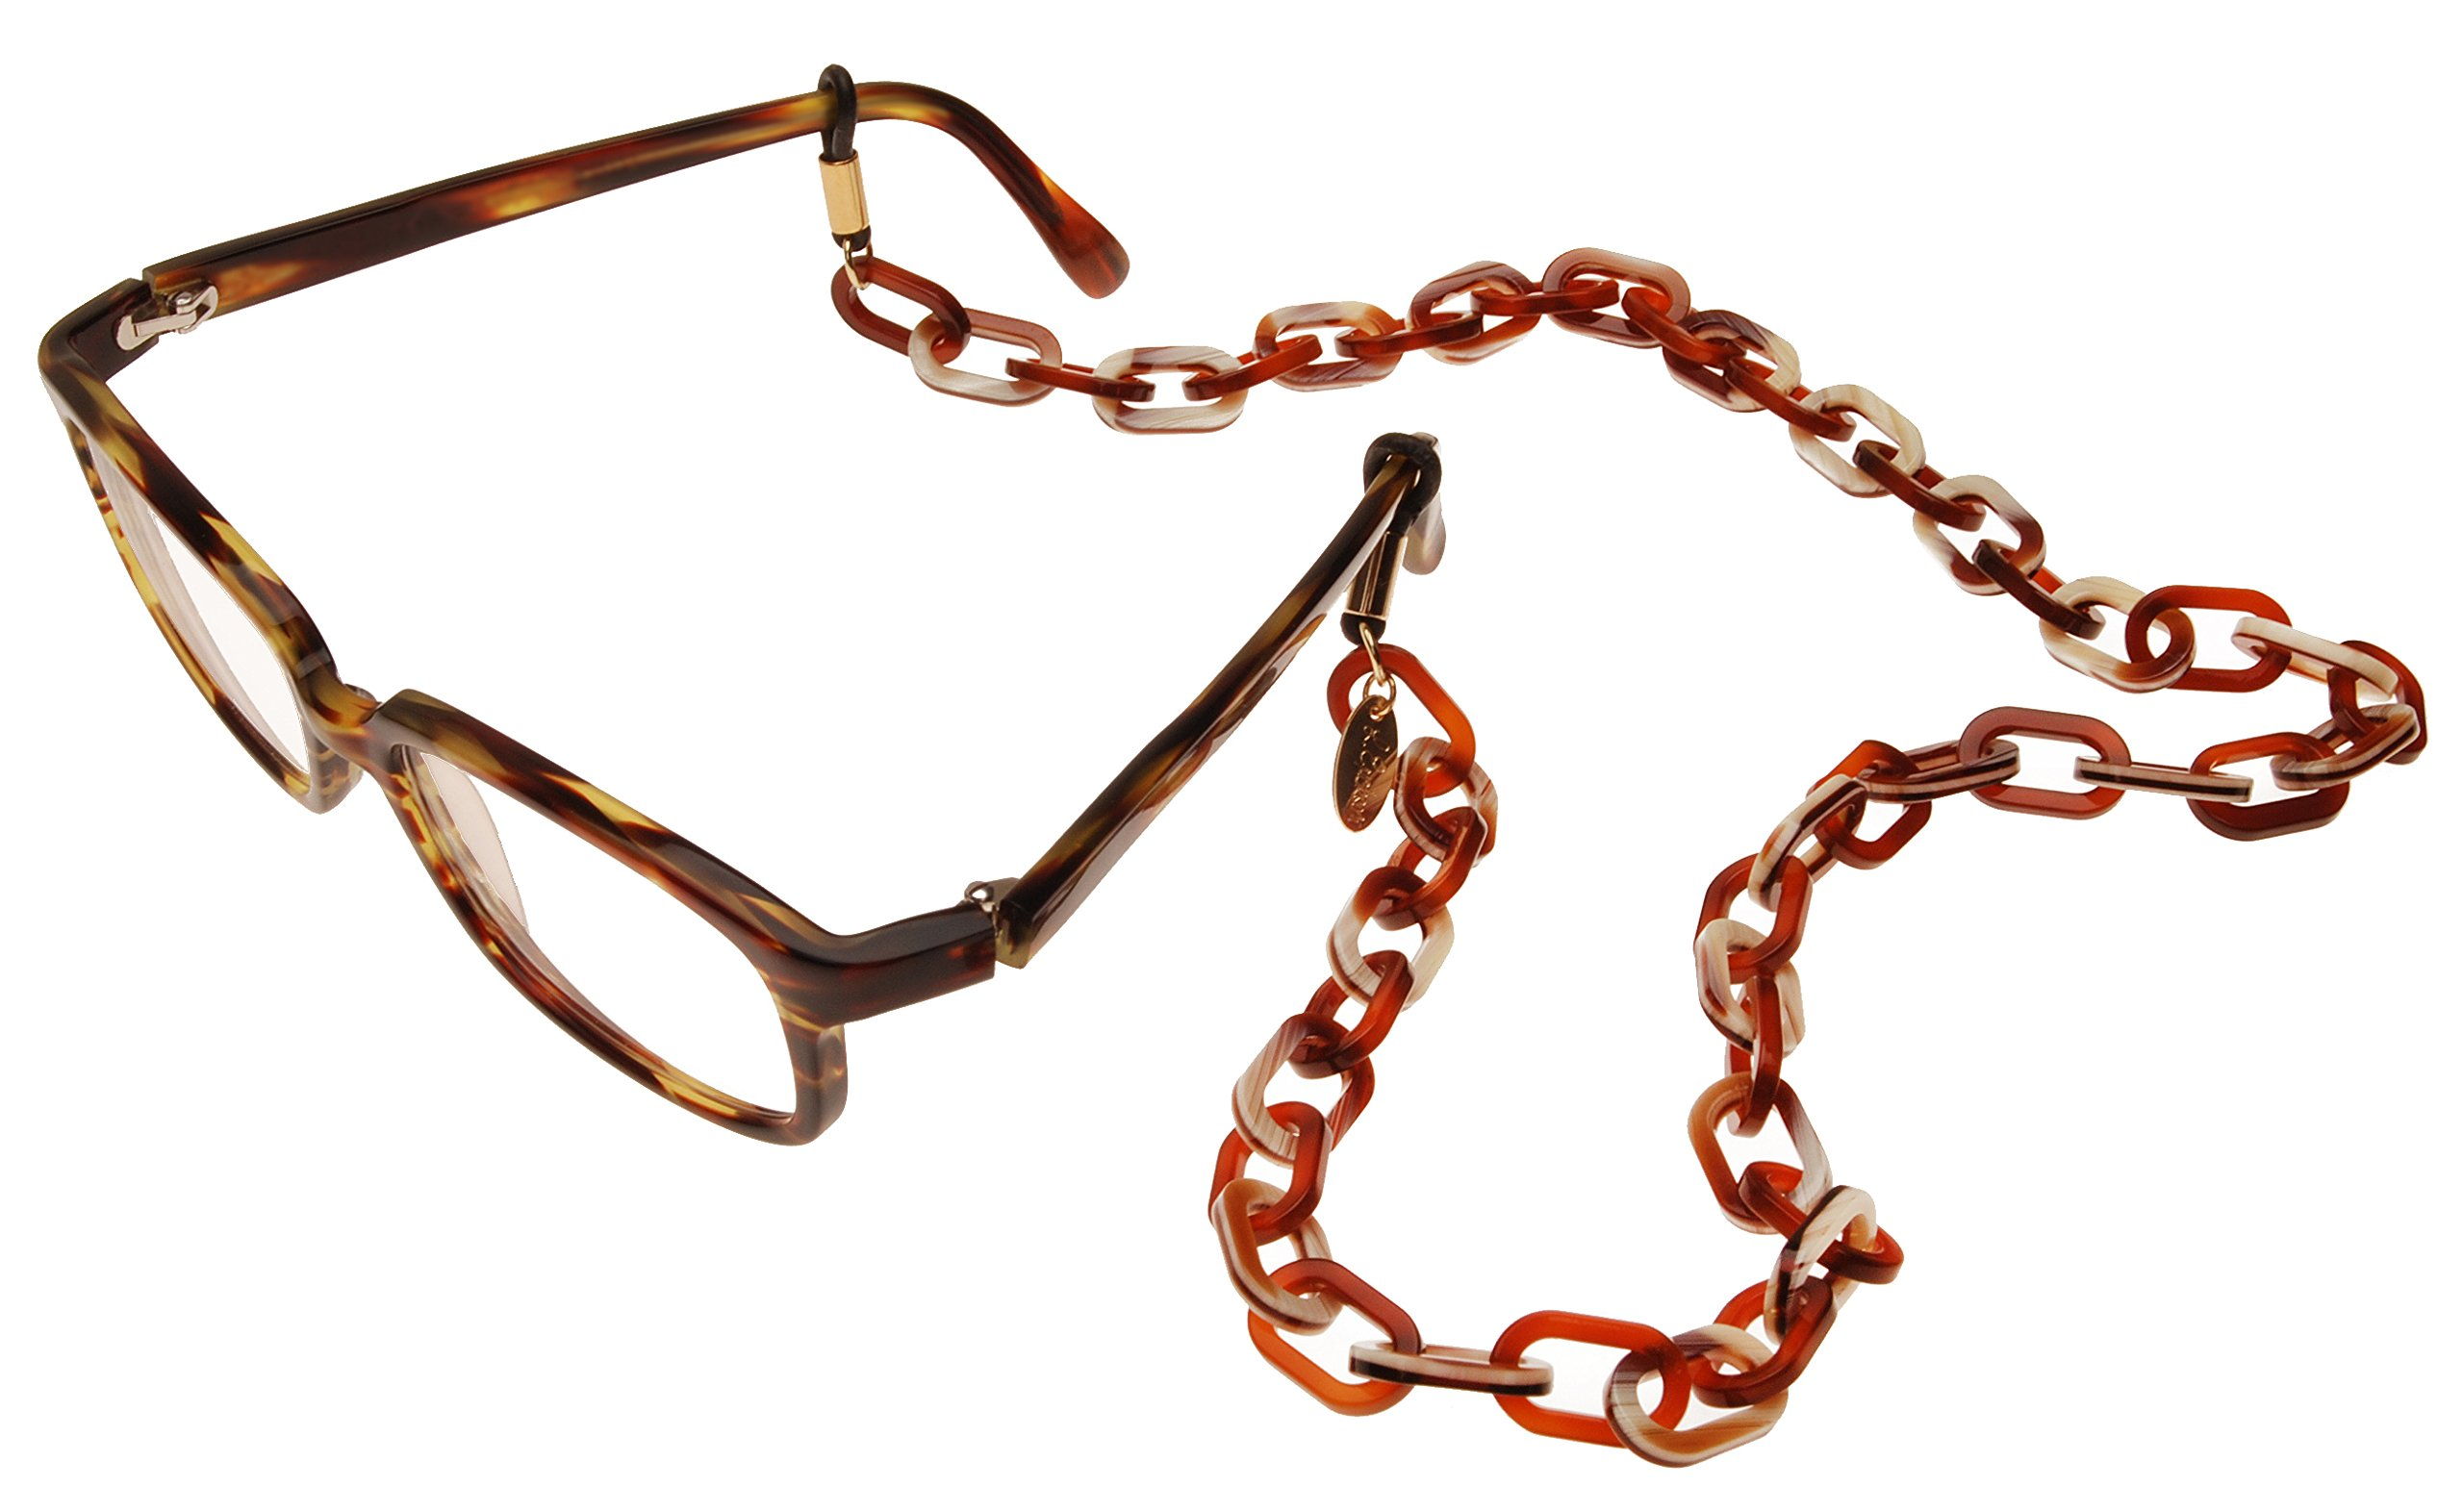 L. Erickson Brynn Oval Link Eyeglass Chain - Tortoise/Natural Horn by L. Erickson (Image #4)